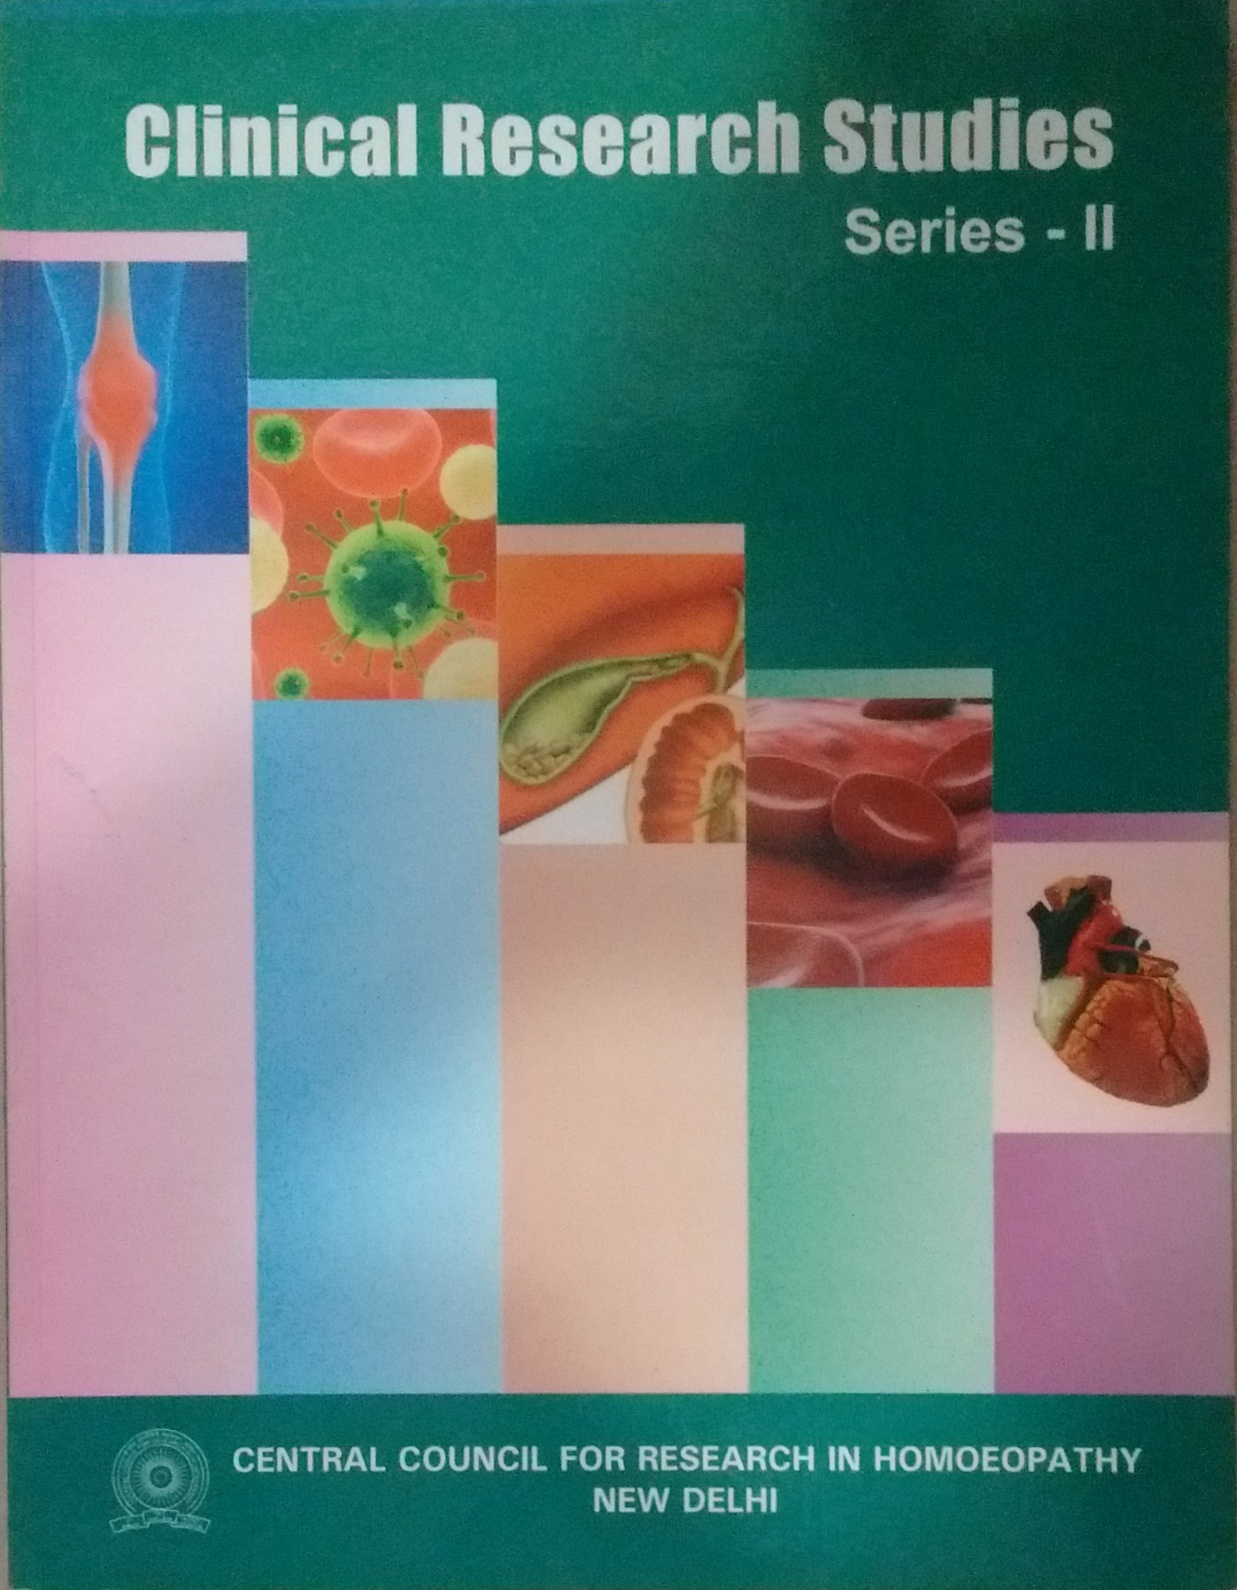 Clinical Research Studies Series - II